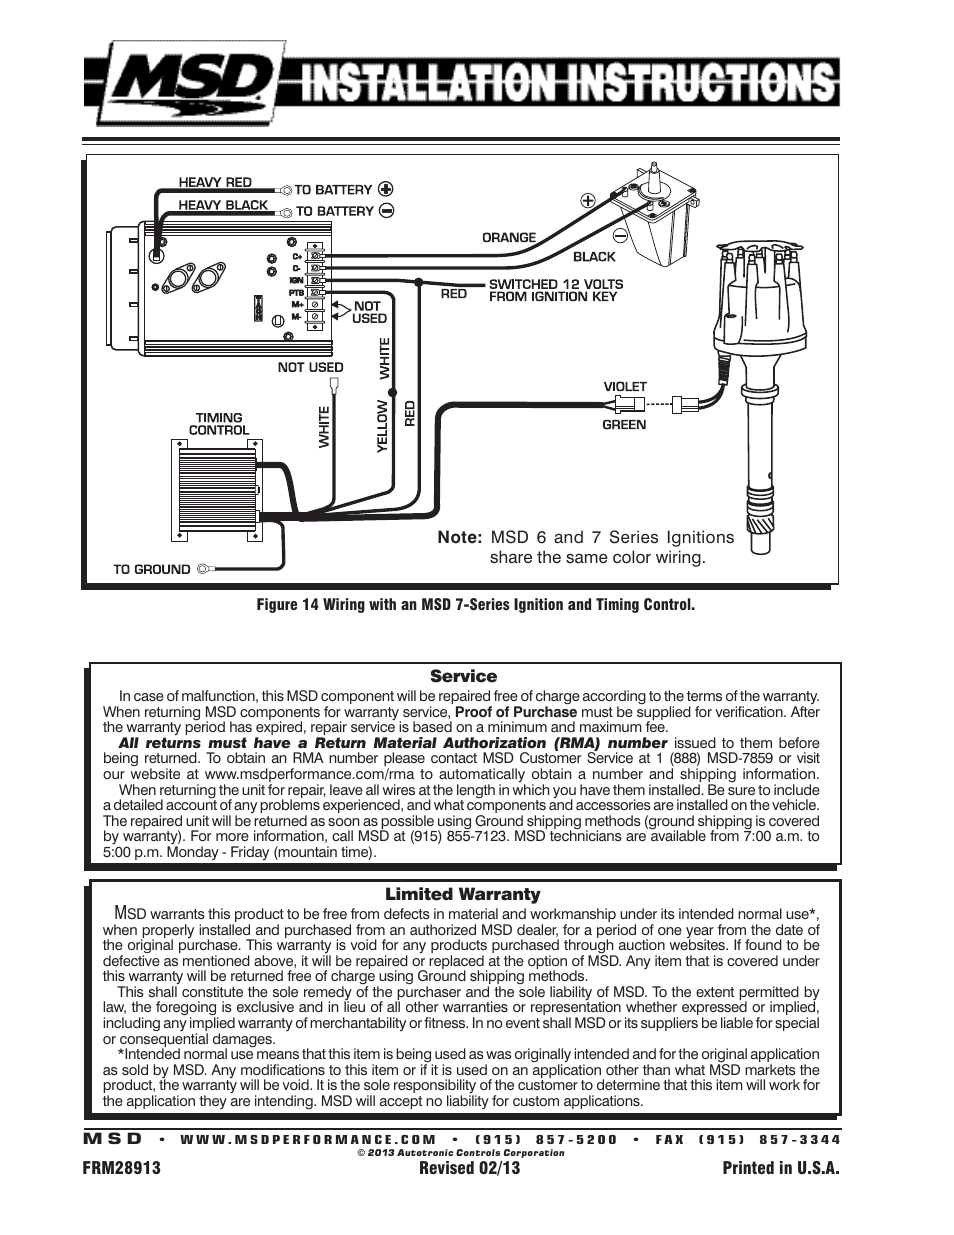 rx7 msd 6a wiring diagram ford msd 6a wiring diagram msd 7 wiring diagram wiring library #1